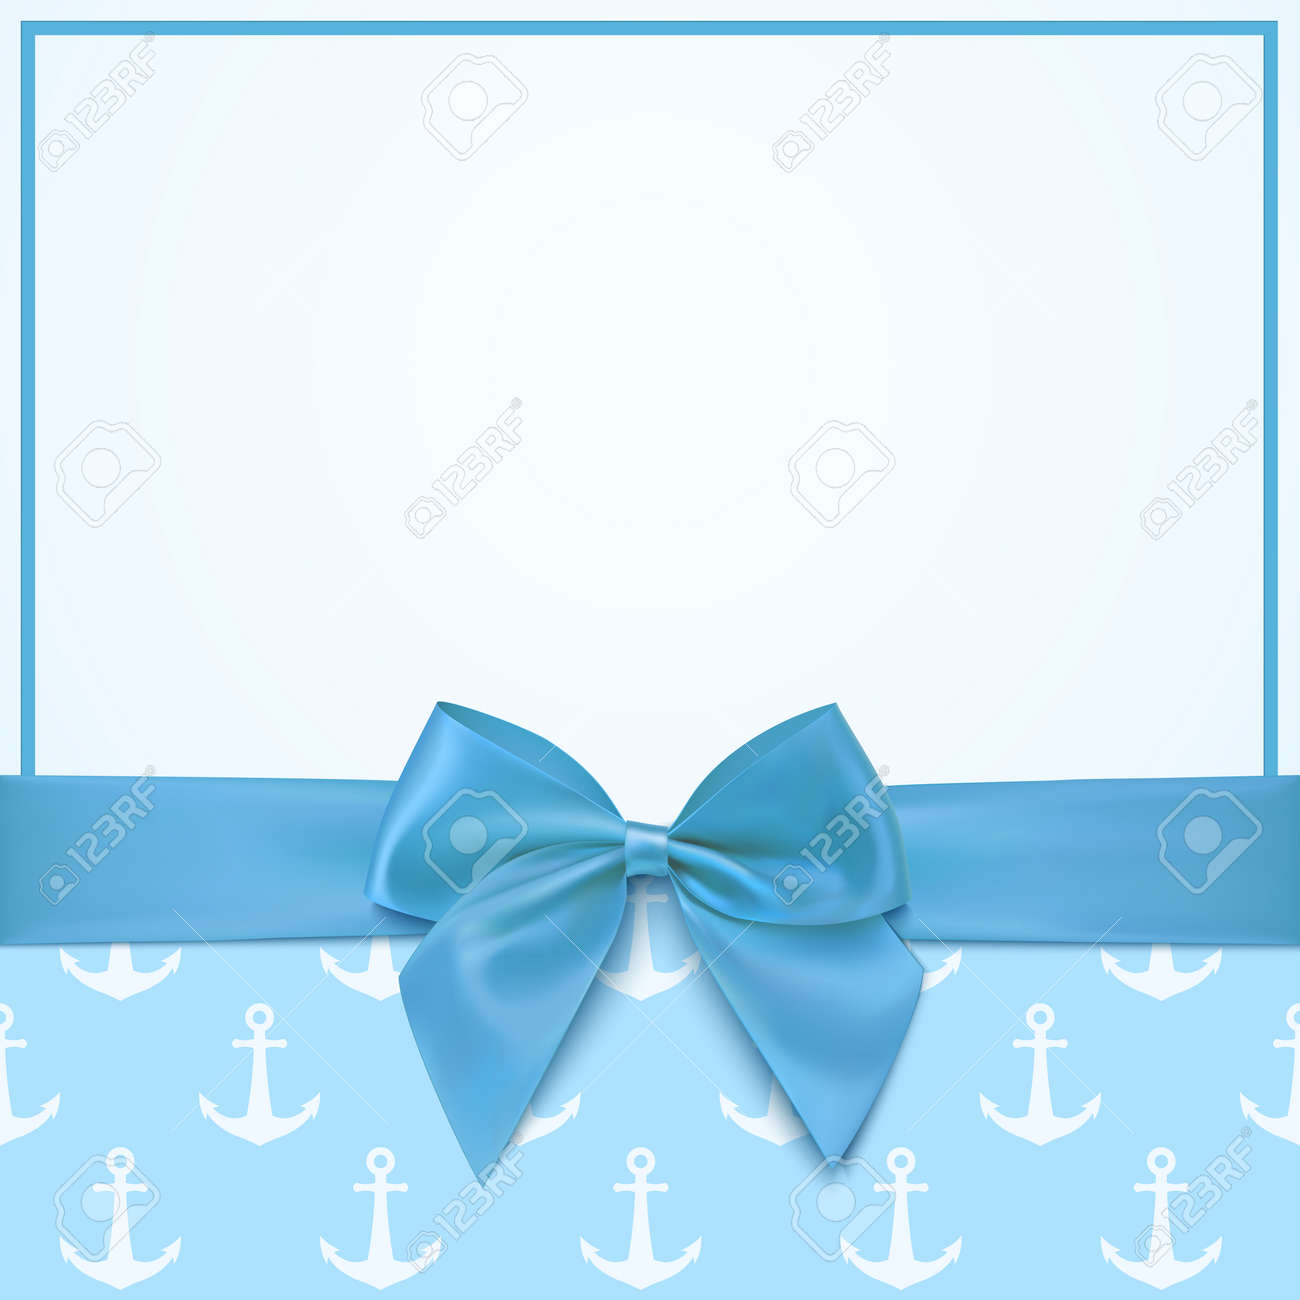 Blank greeting card template for baby boy shower celebration or baby boy announcement card. Vector illustration. - 53055719